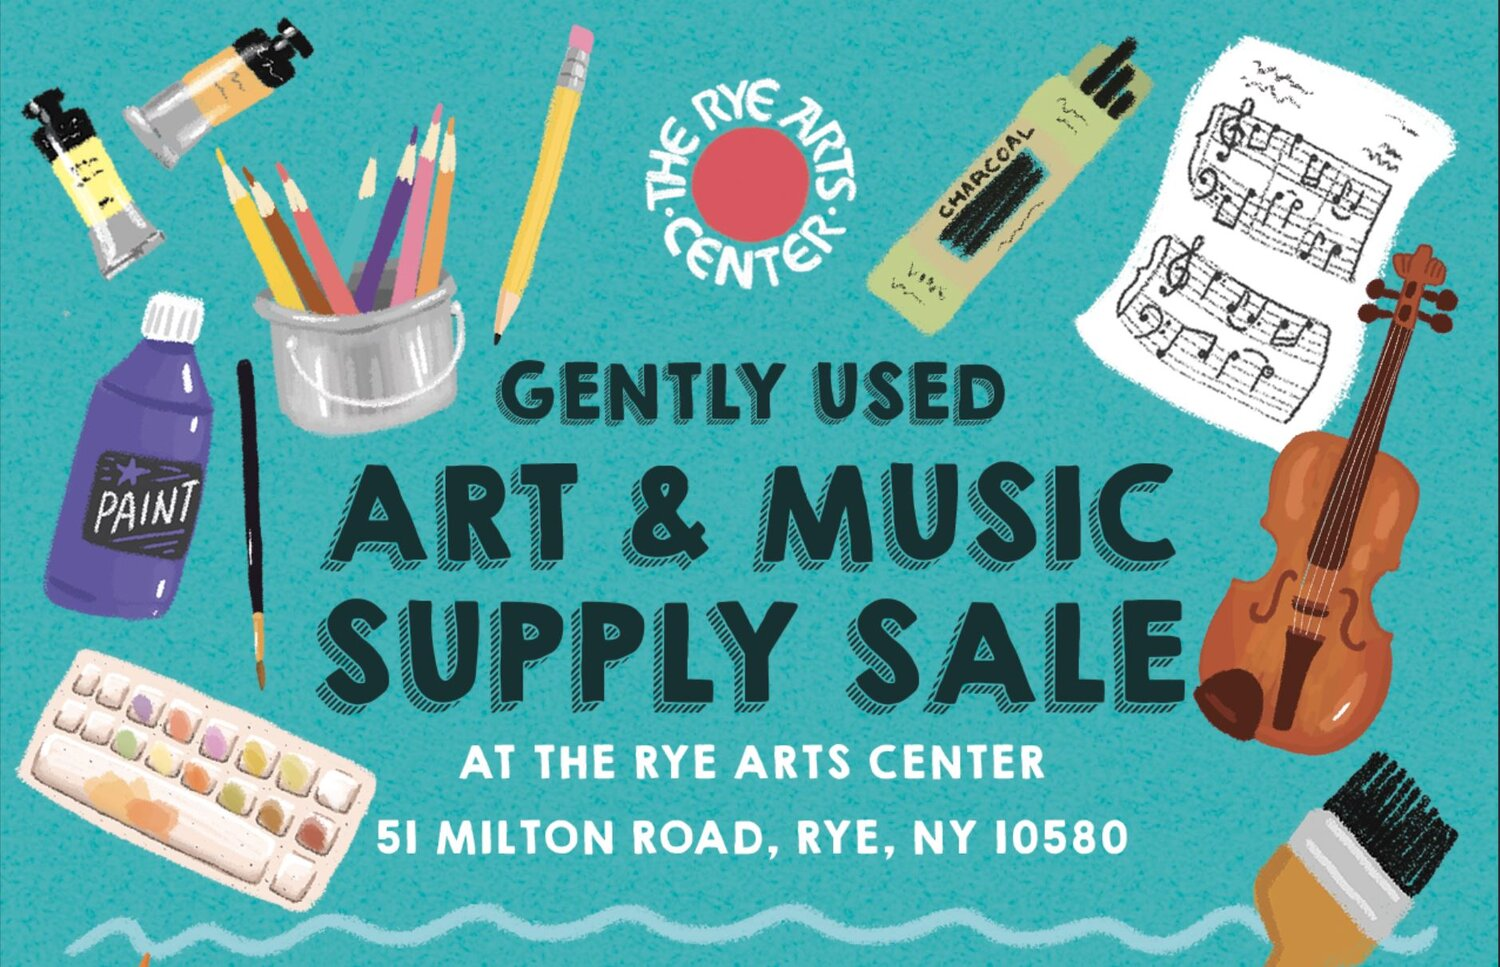 Gently Used Art & Music Supply Sale at The Rye Arts Center